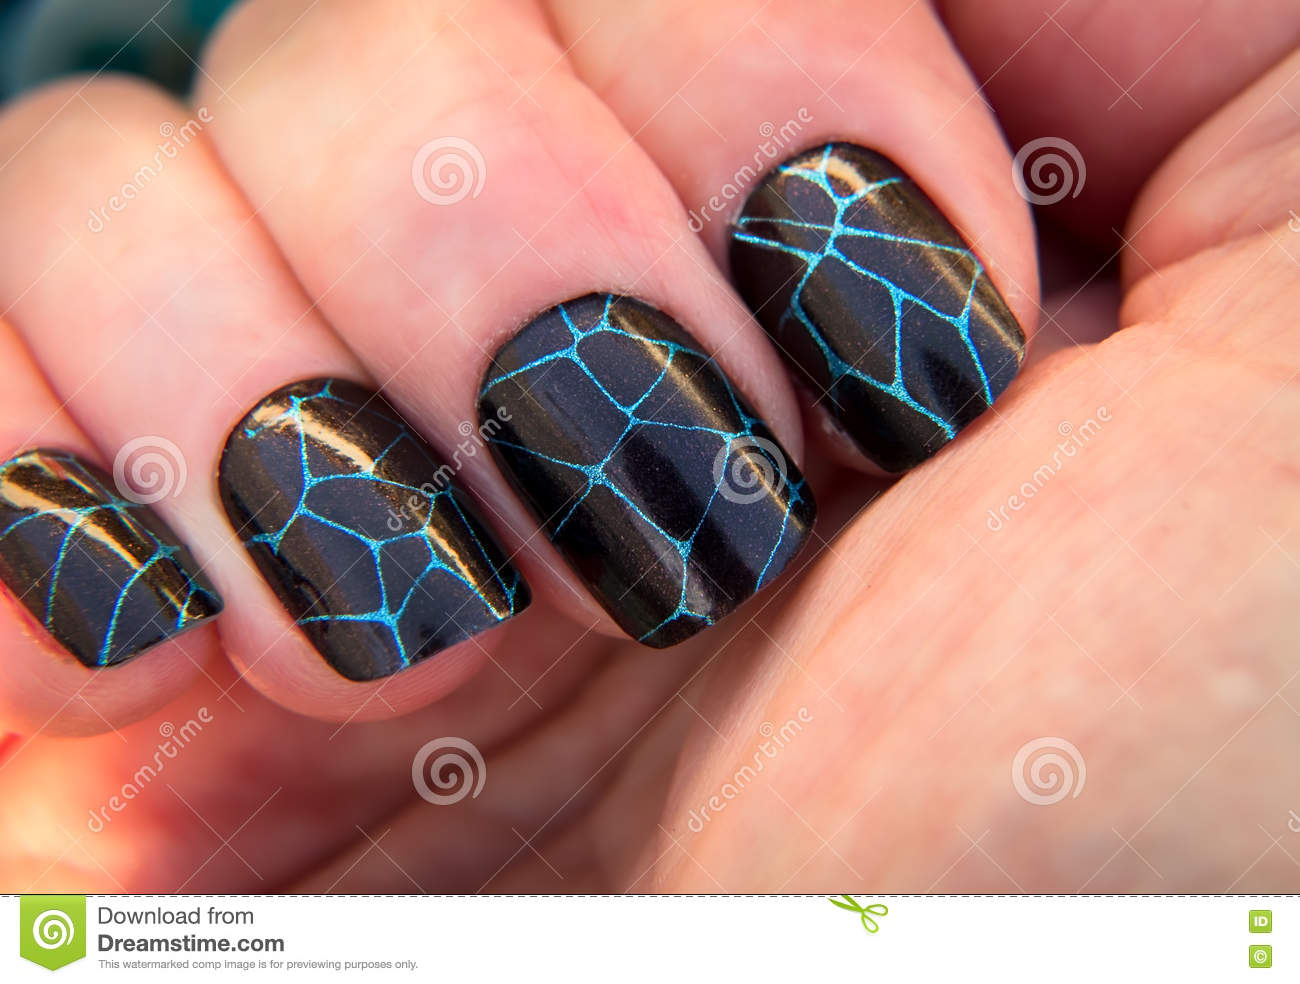 Crackle Nail Art Stock Photo Image Of Manicured Perfectly 79761332